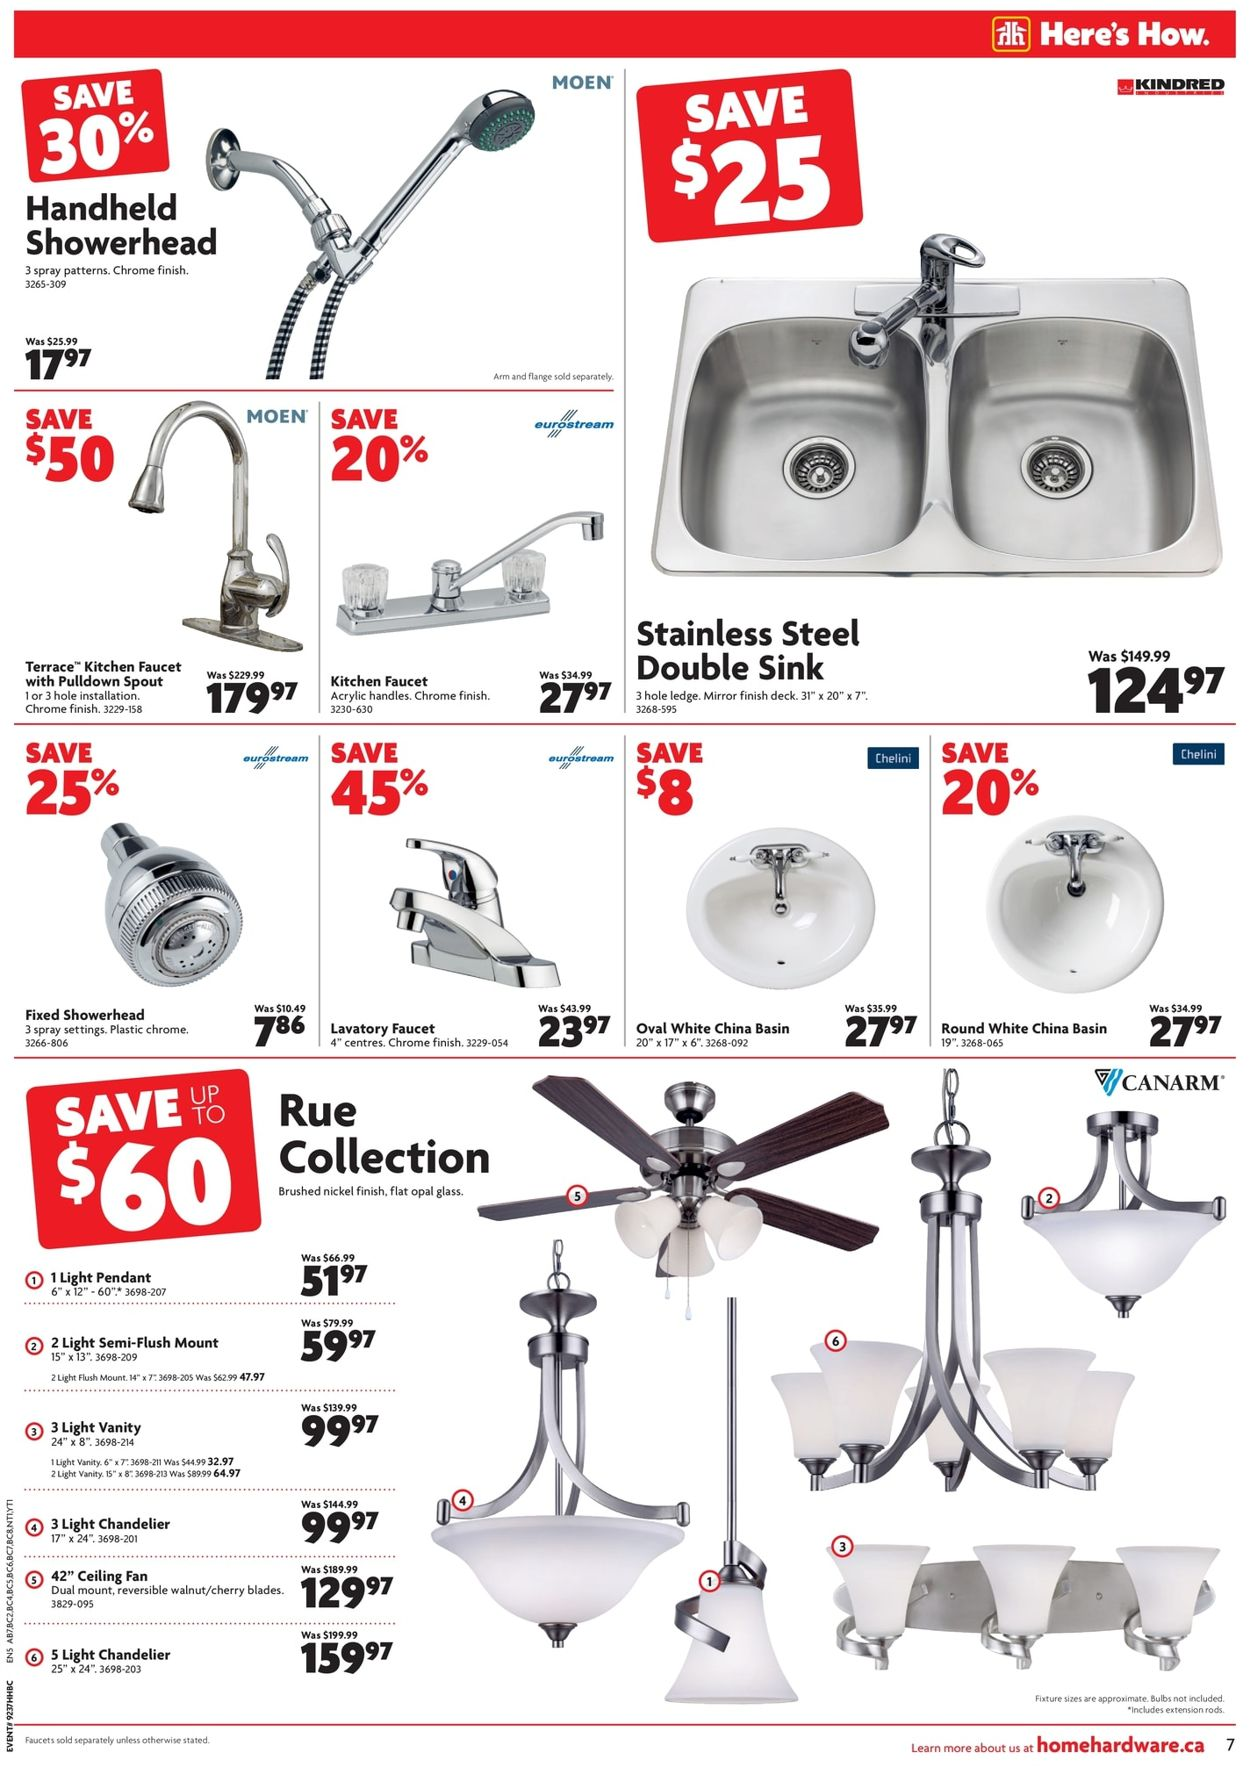 Home Hardware - Winter 2019 Savings Flyer - 11/14-11/20/2019 (Page 8)